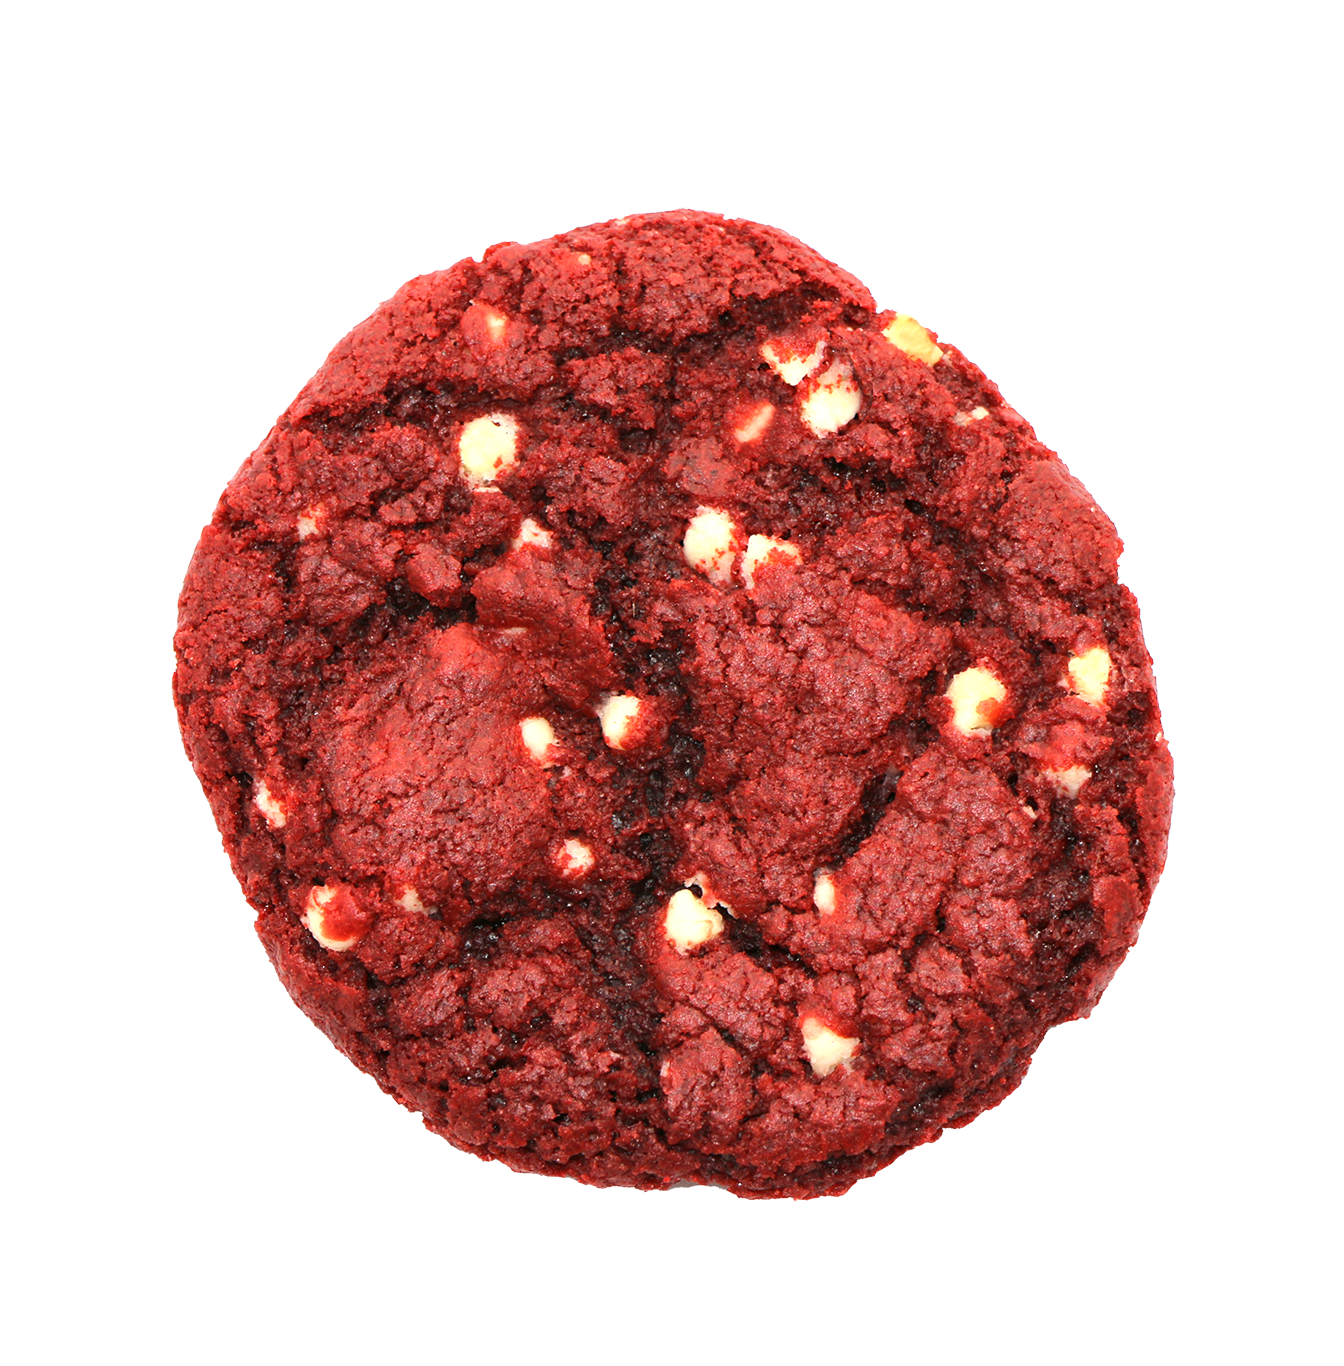 10mg Red Velvet Cookie CROPPED.png